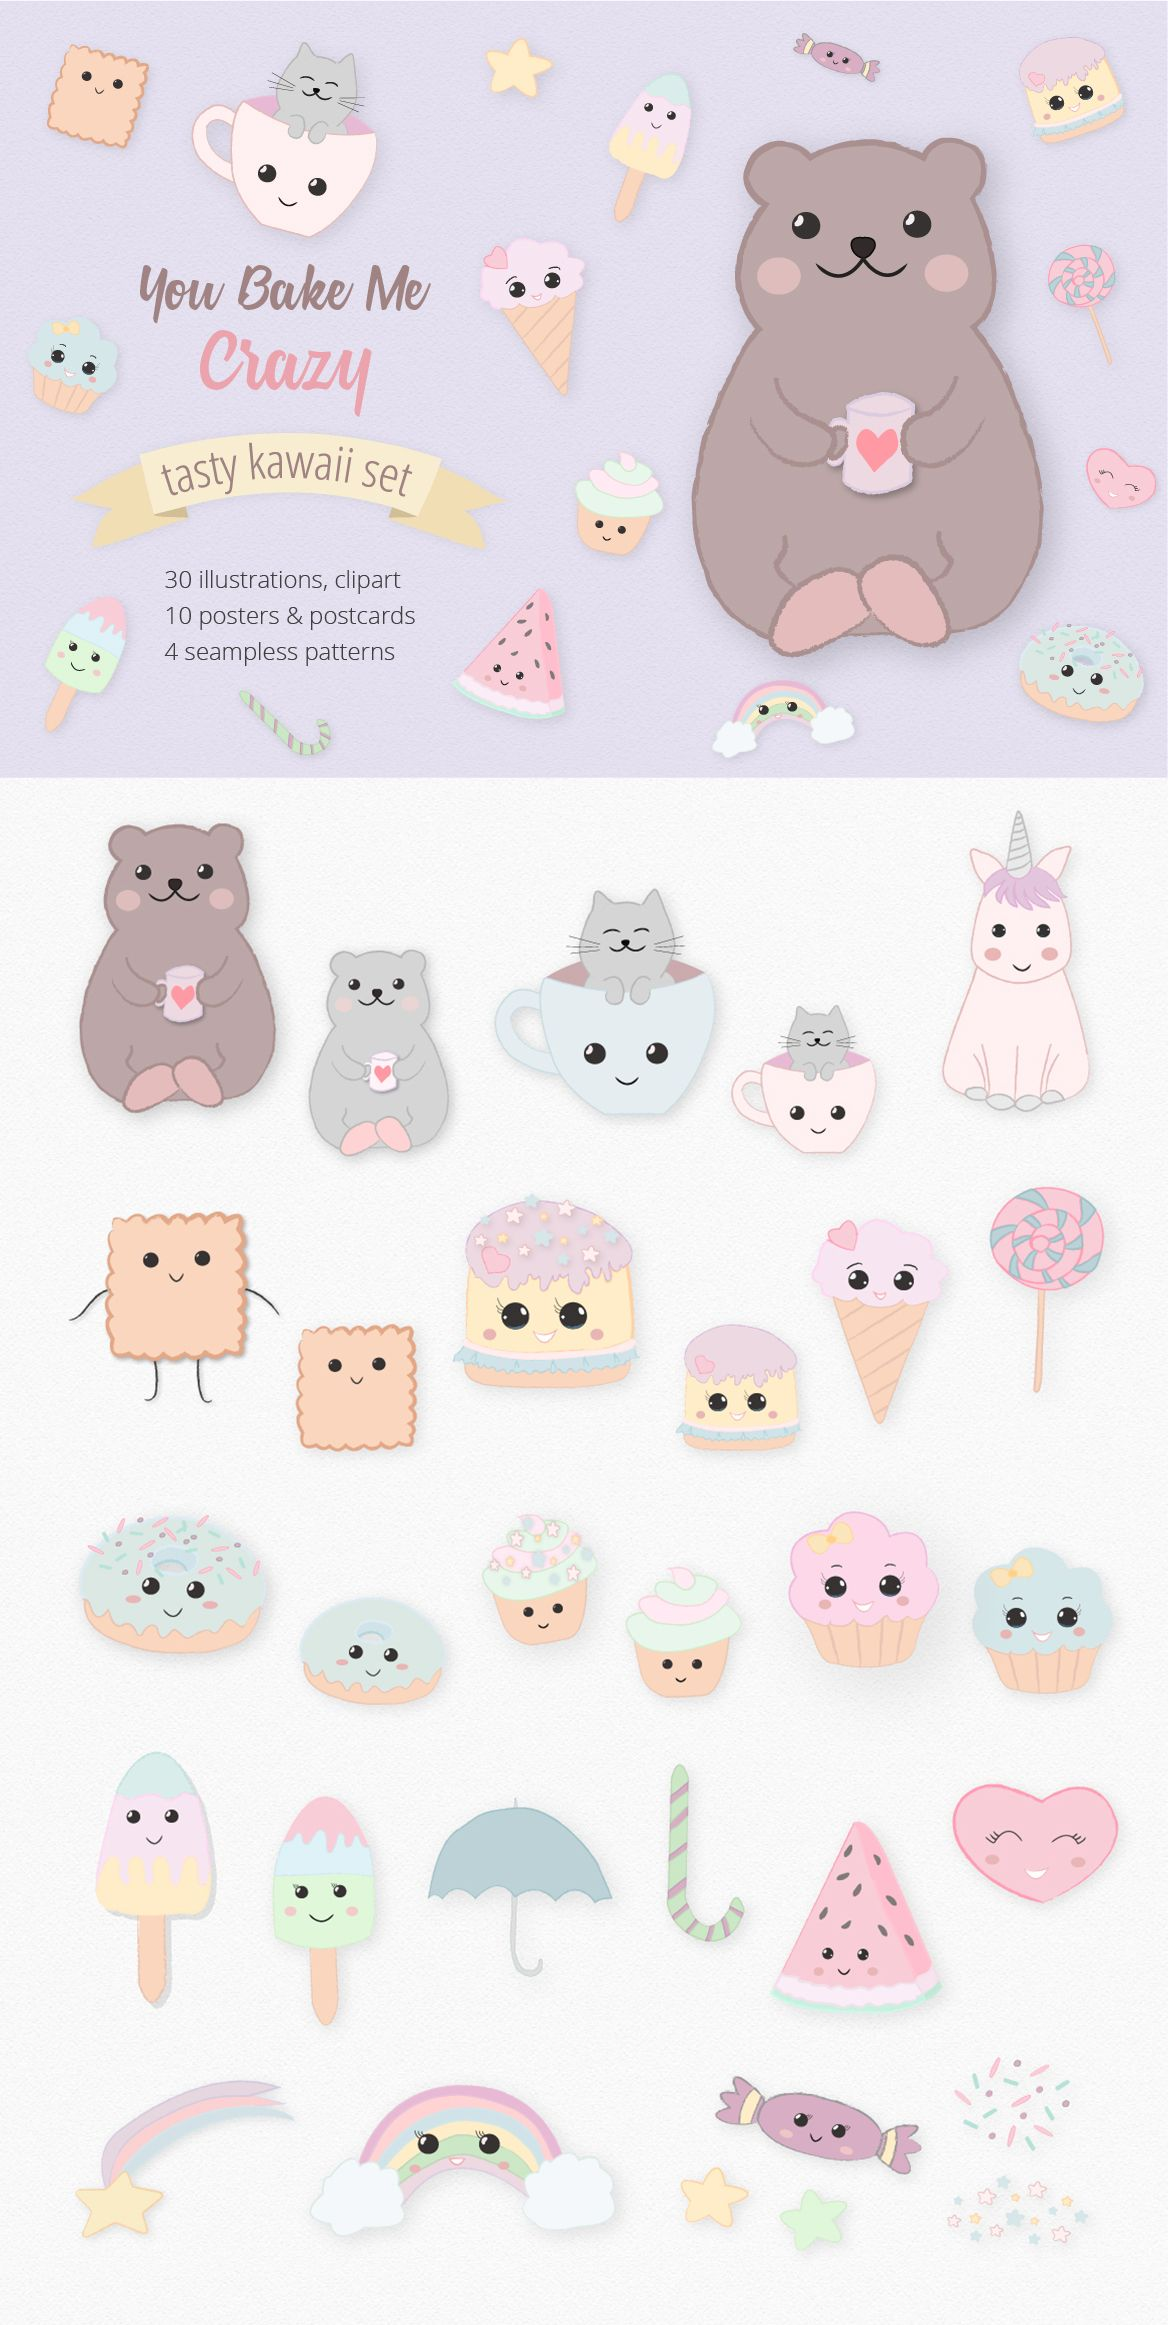 7 clipart sweet. Kawaii cute cake illustration